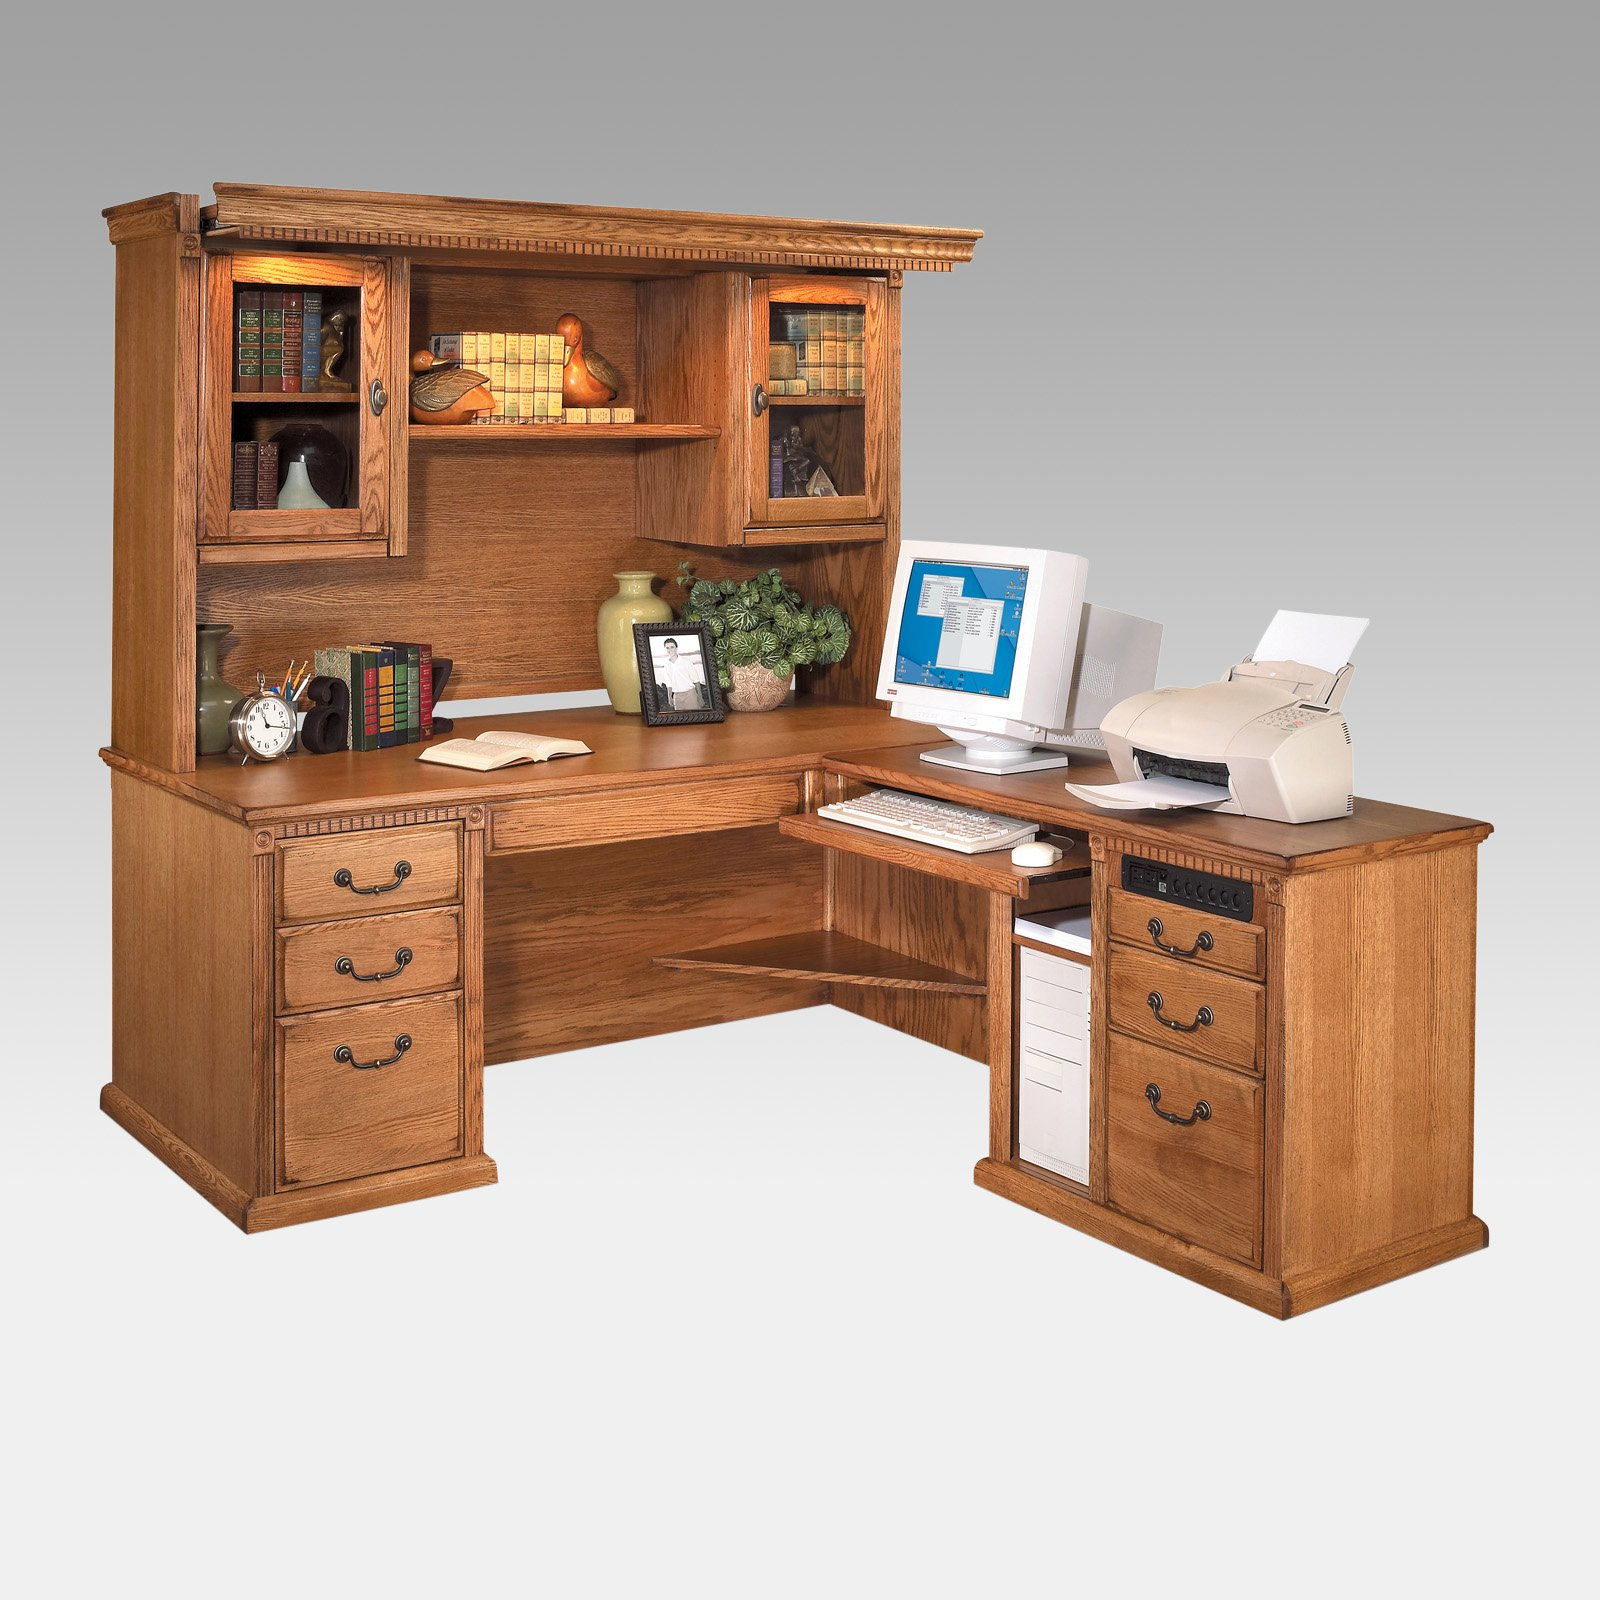 Beautiful L Shaped Desk With Hutch And Drawer Plus Computer Set For Home  Office Furniture Ideas